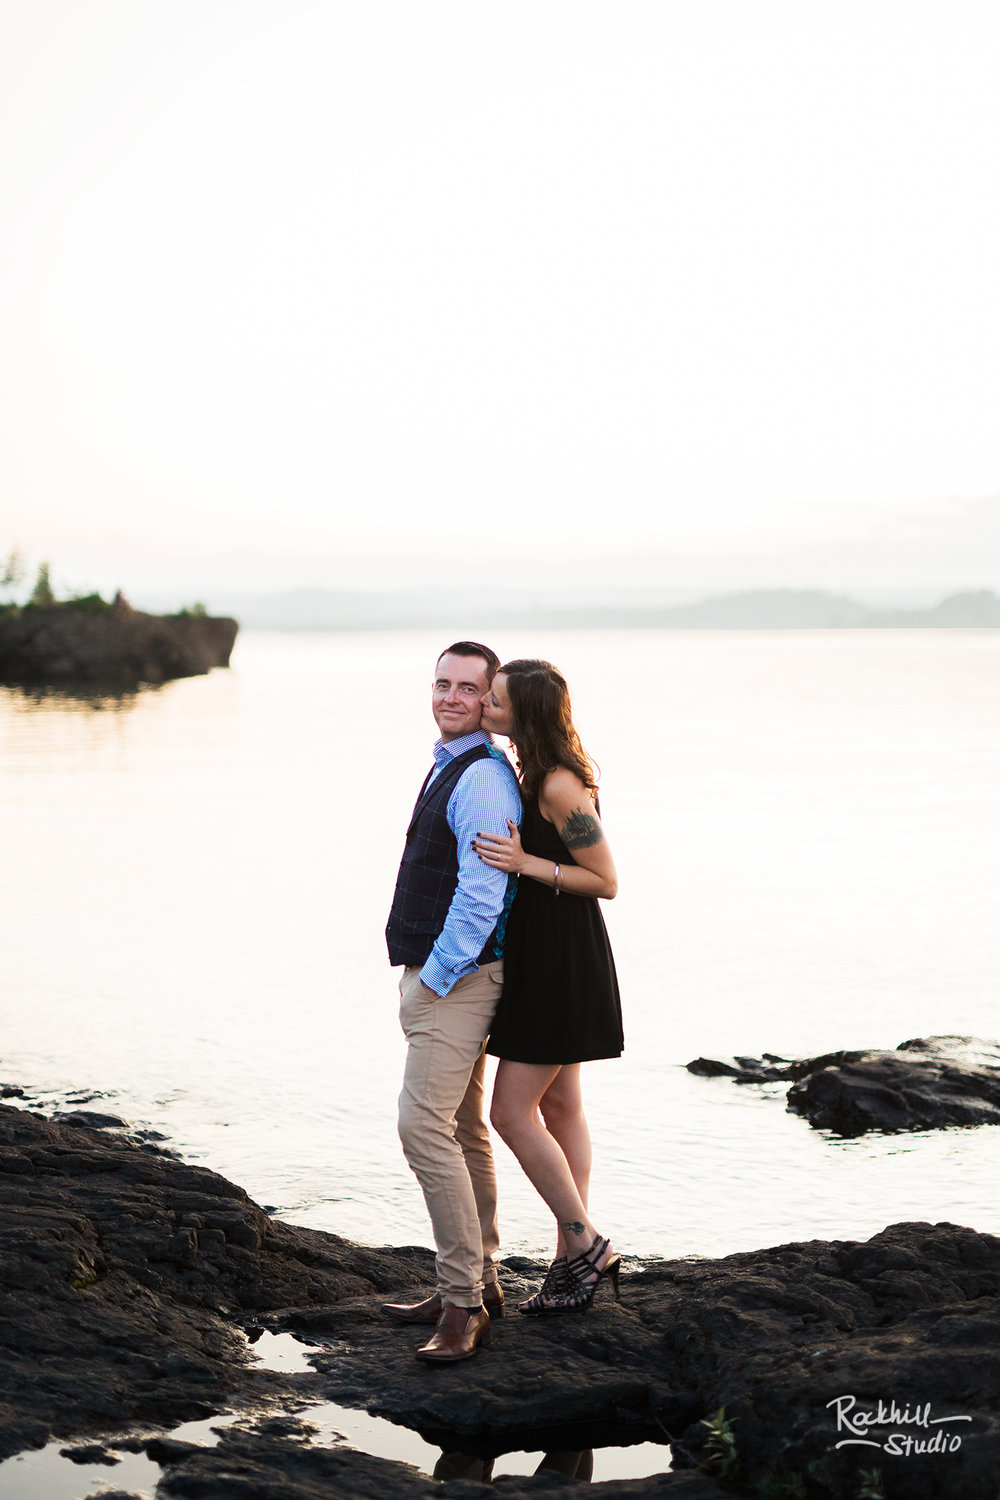 traverse-city-wedding-engagement-rockhill-casey-del-15.jpg